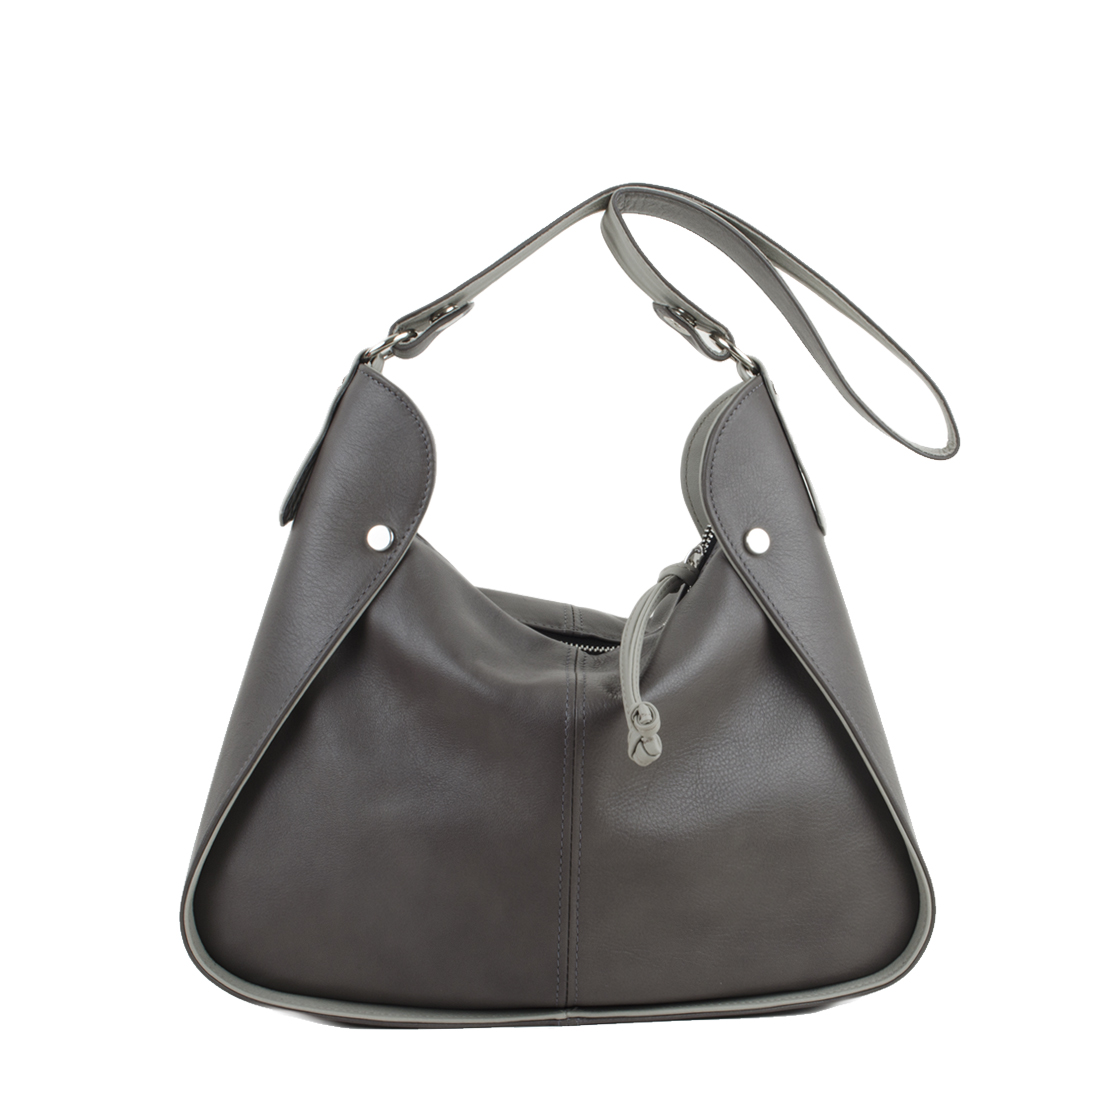 Meredith Grigio Pomice Leather Shoulder Bag.